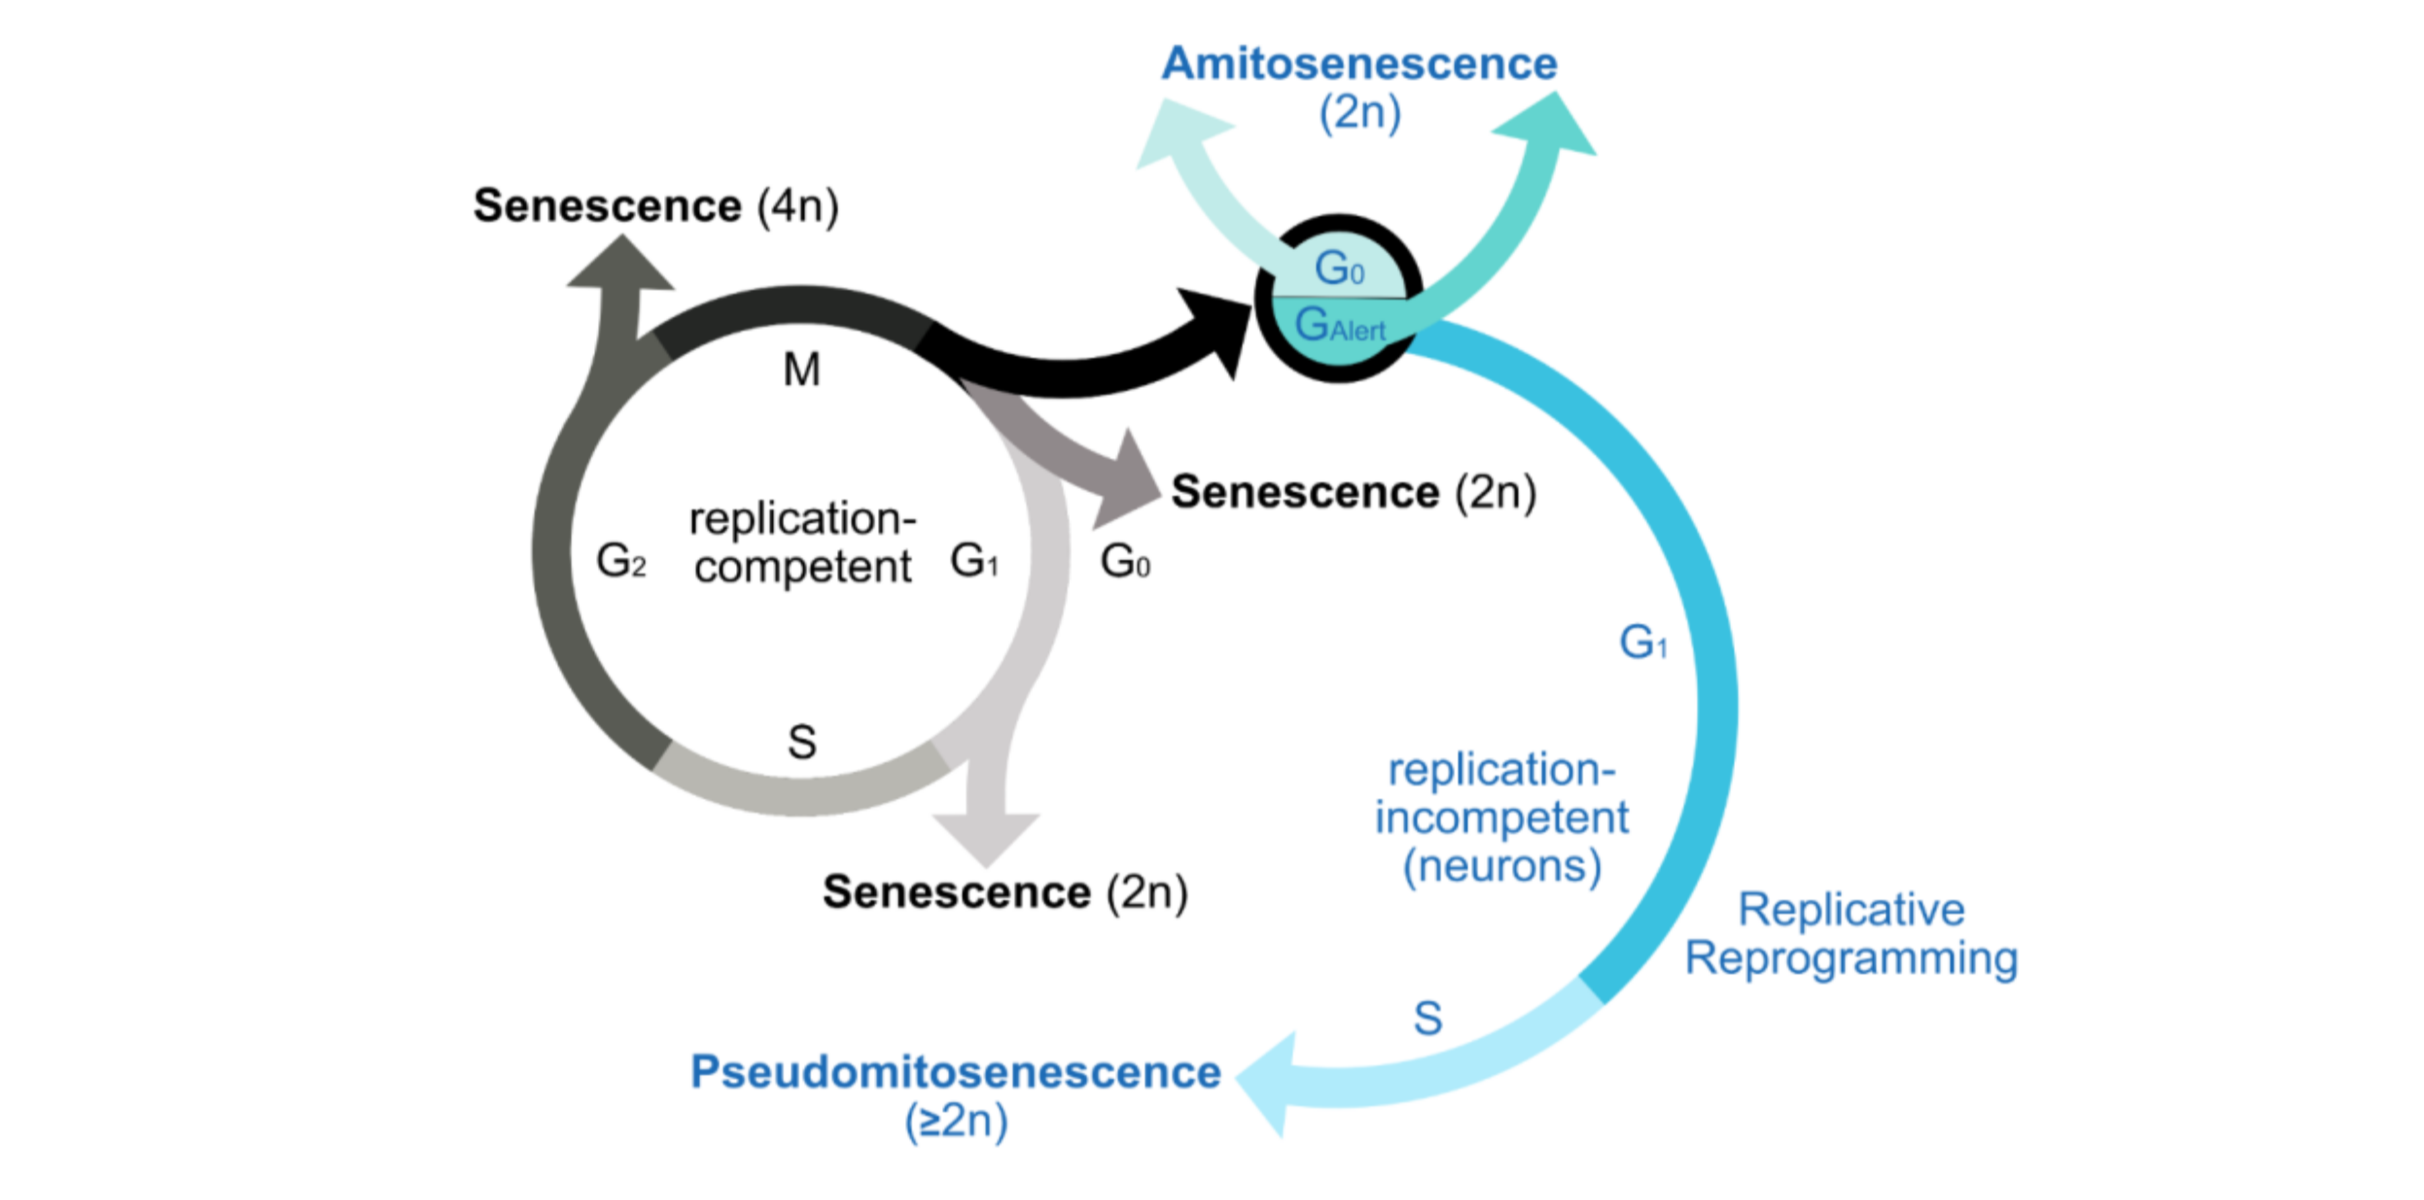 What are the characteristics of amitosenescent cells?